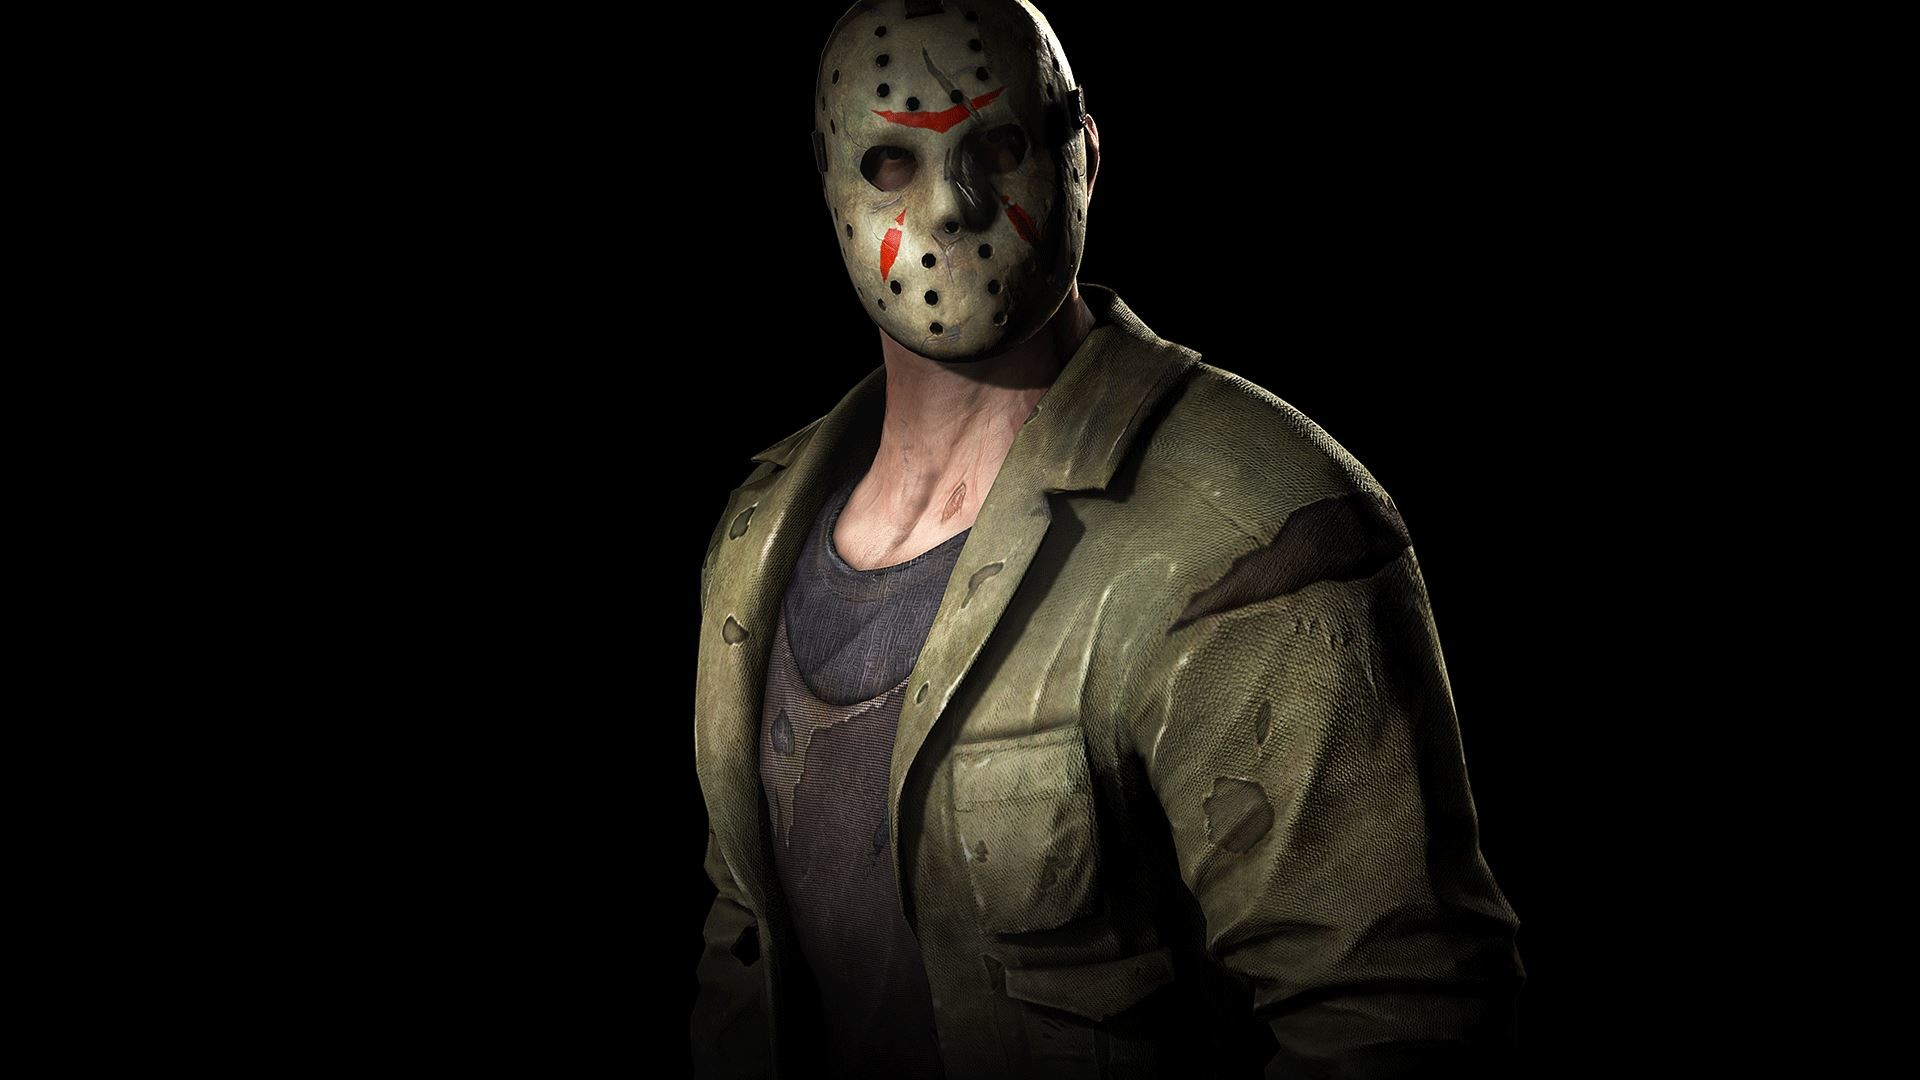 Jason Voorhees Friday The 13th Wallpapers Wallpapertag